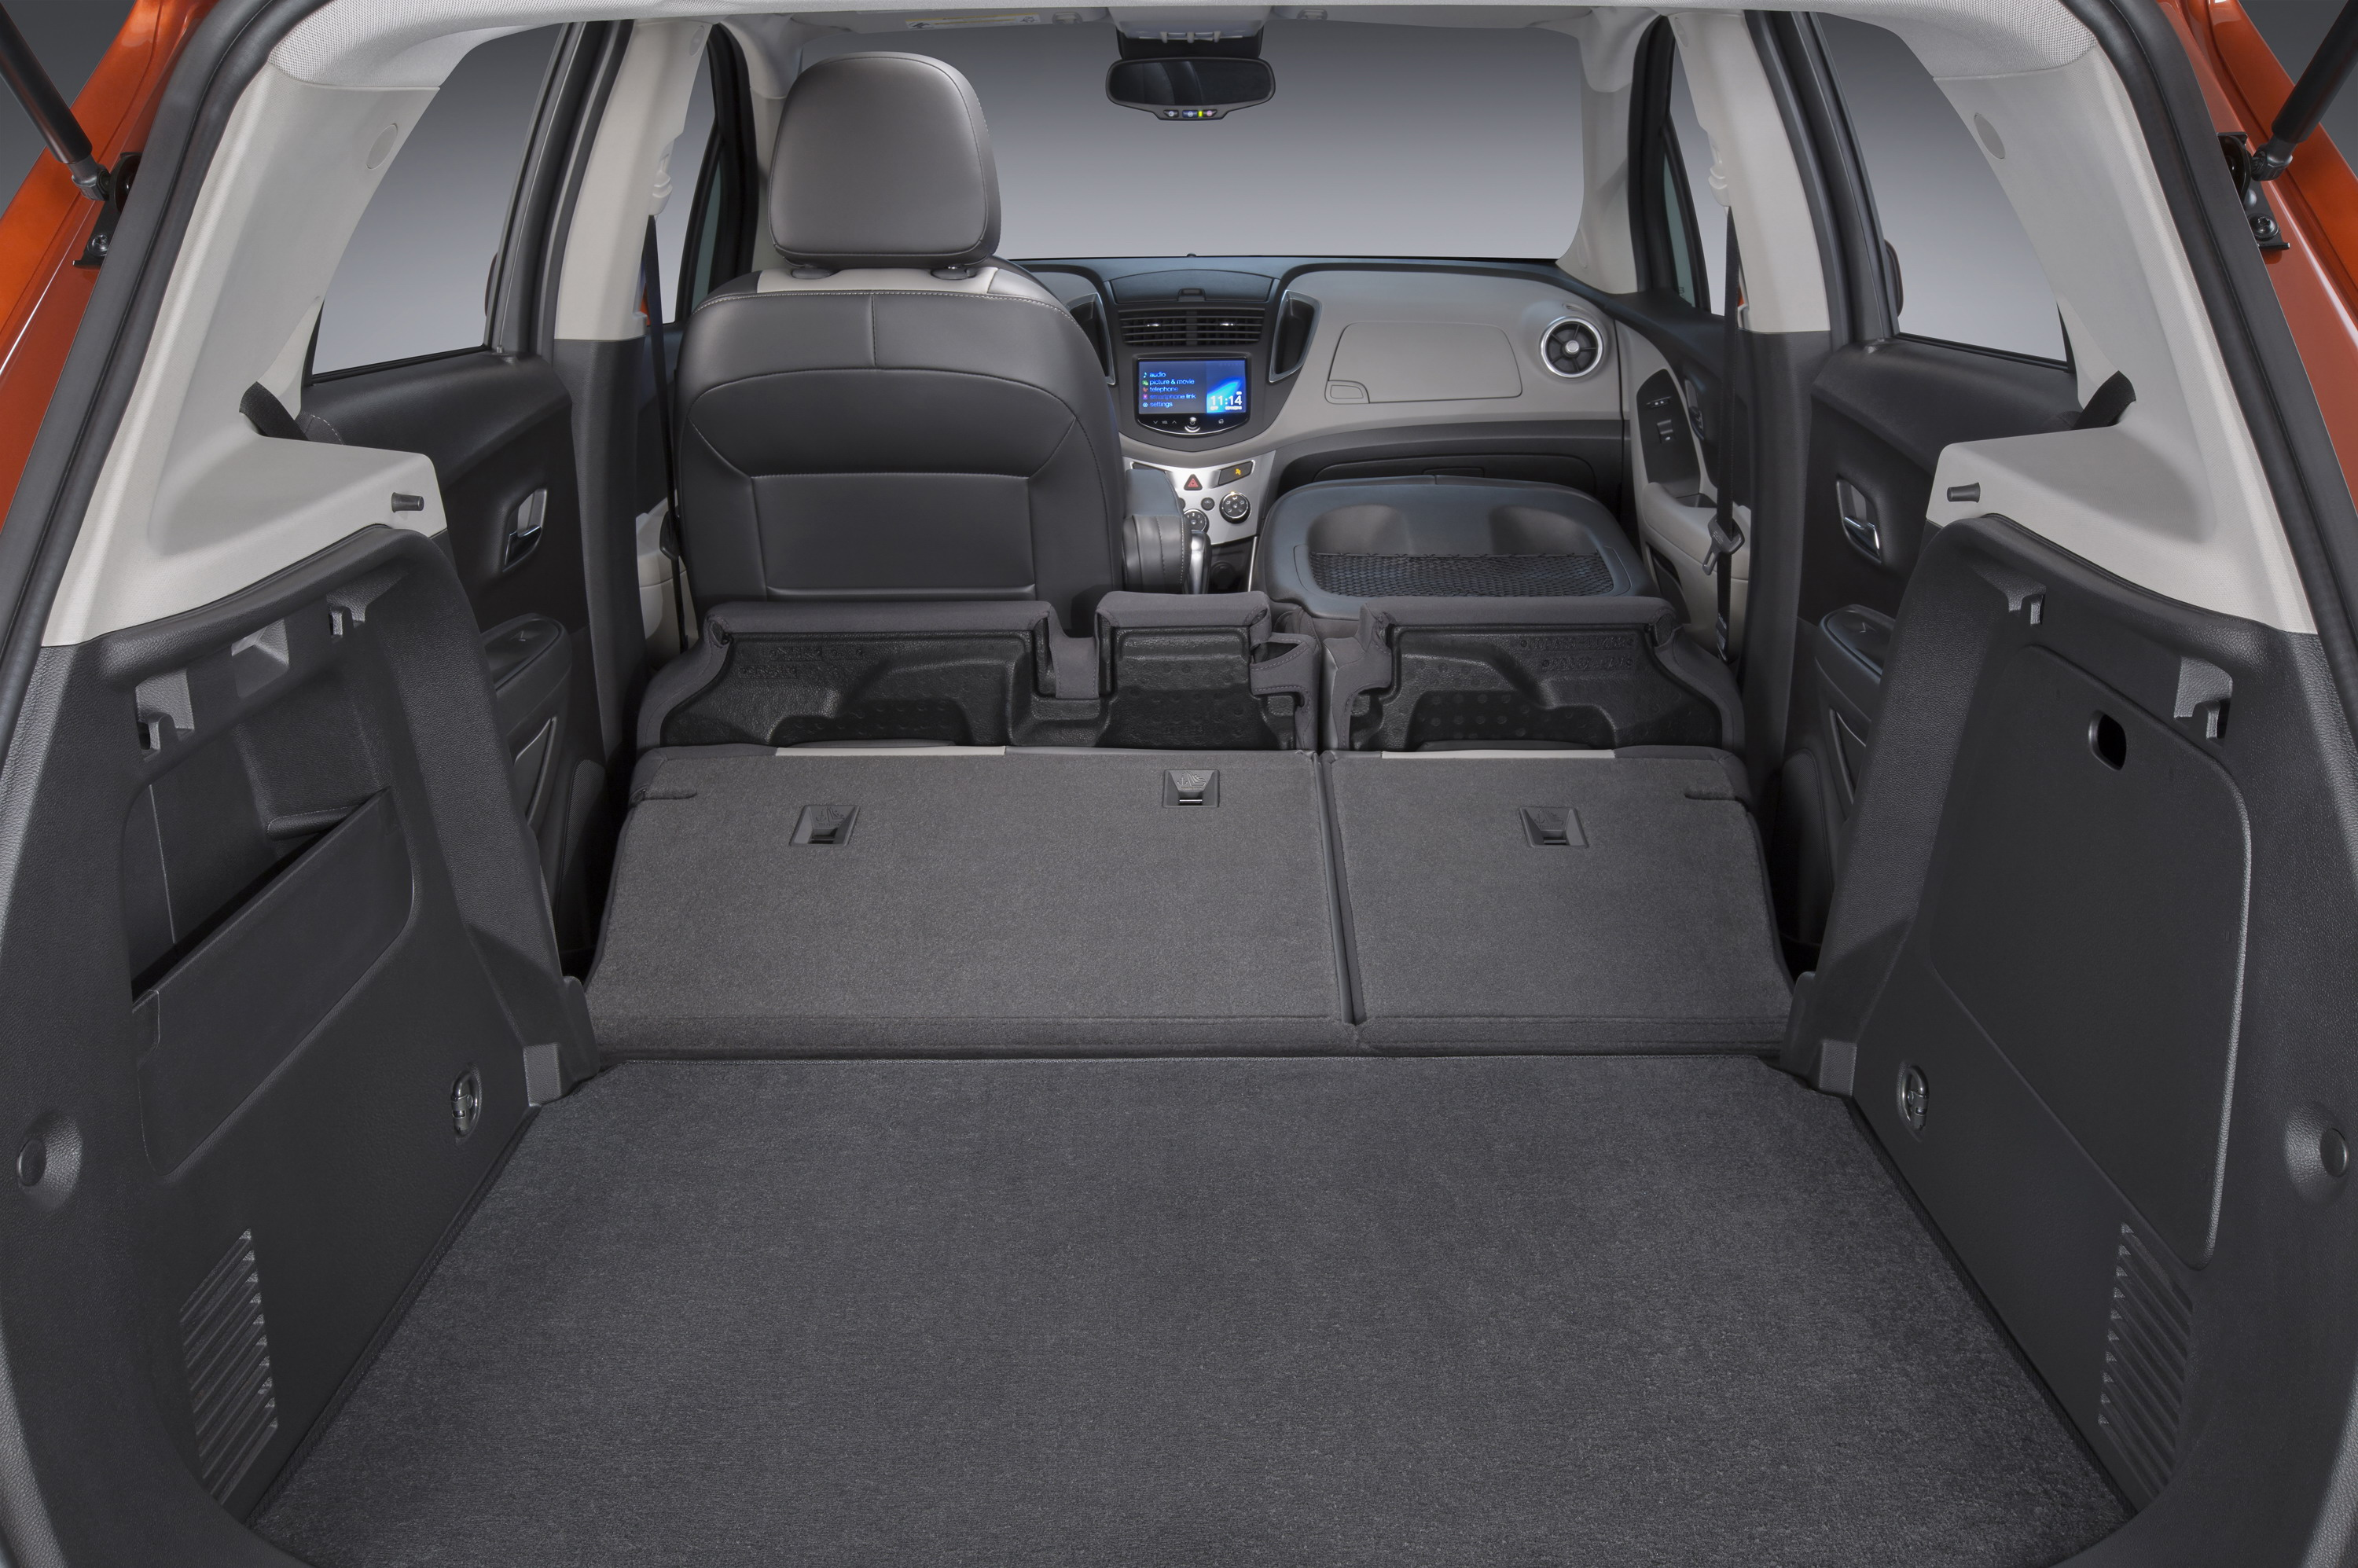 Chevy trax interior dimensions